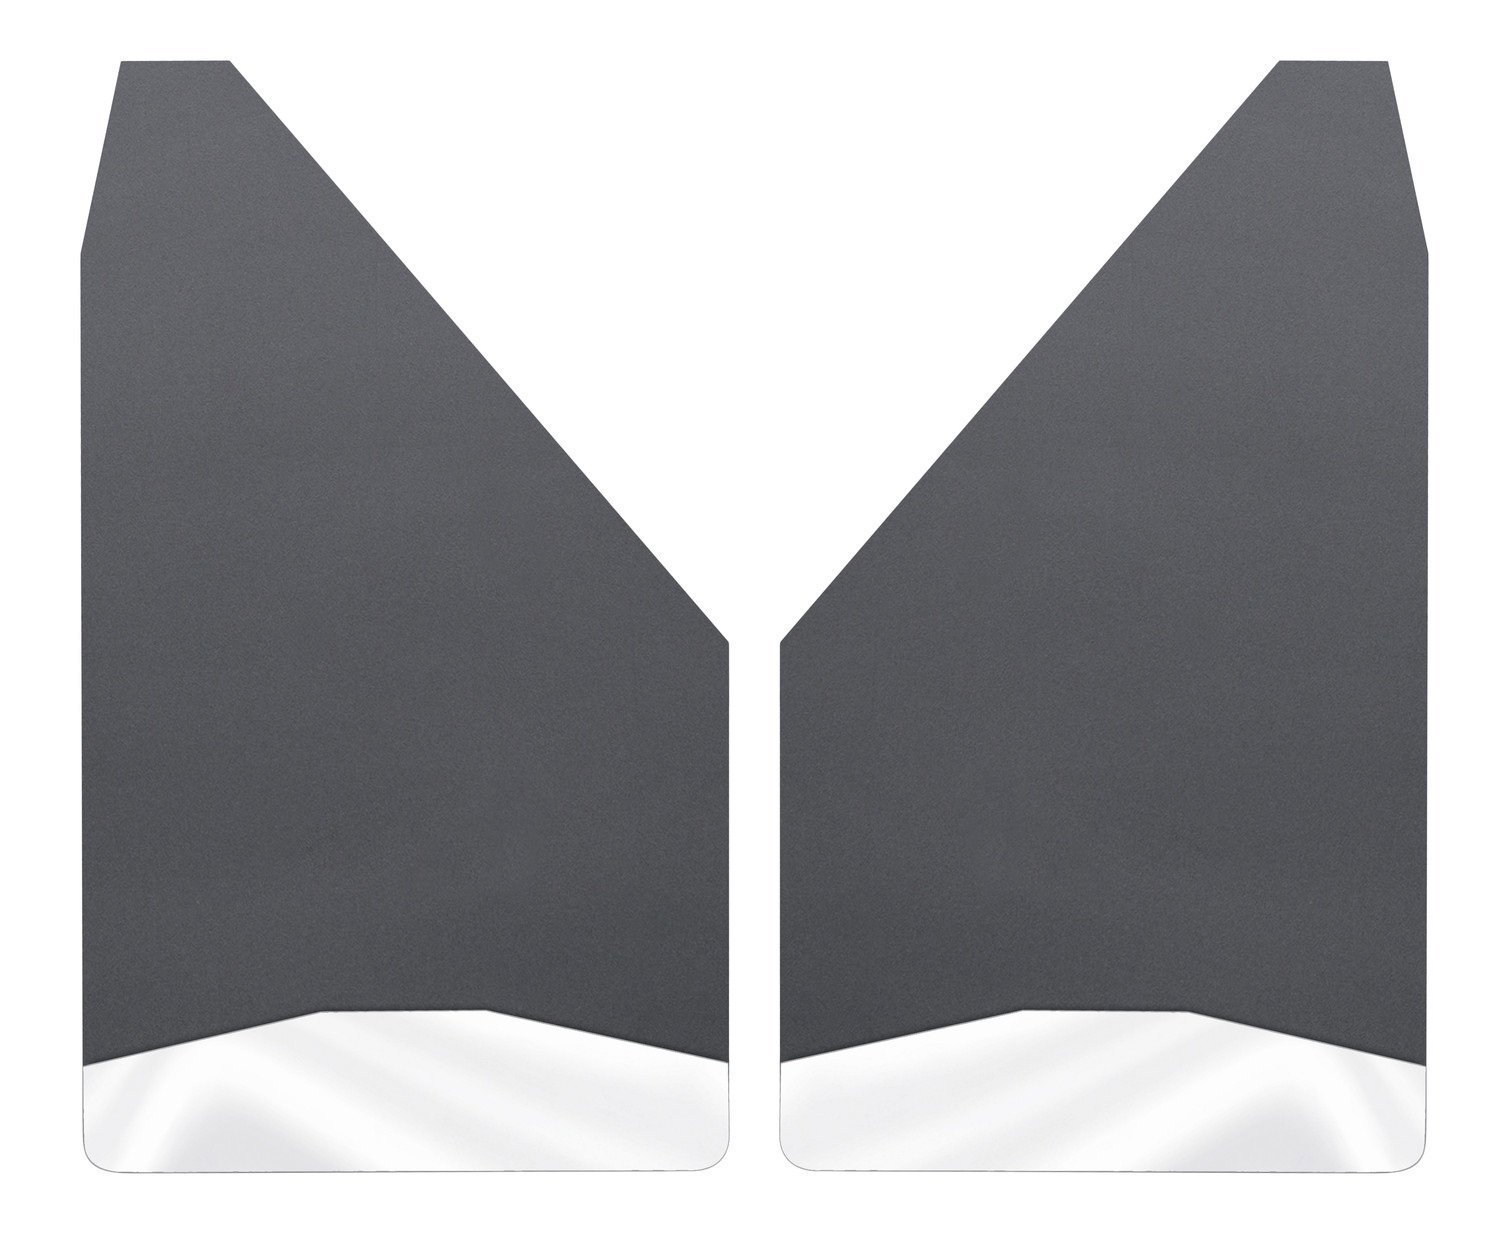 Husky Liners Universal Mud Flaps 12IN Wide - SS Wt - Universal Fitment